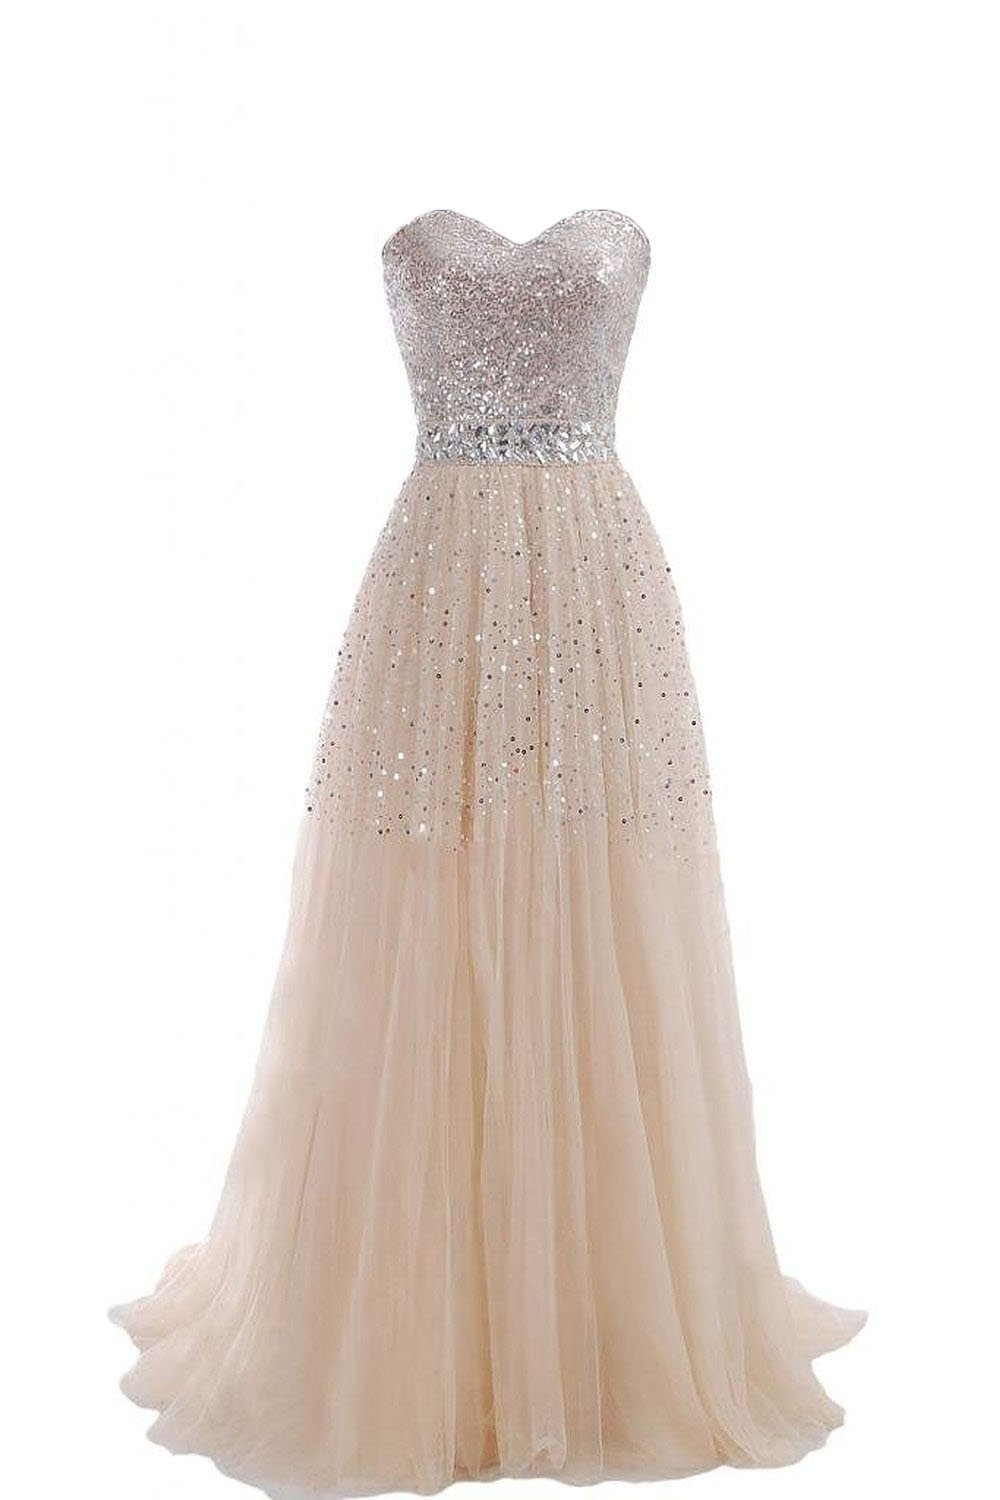 Enjoybuys 2015 Exquisite Sweetheart Tulle Long Prom Dress